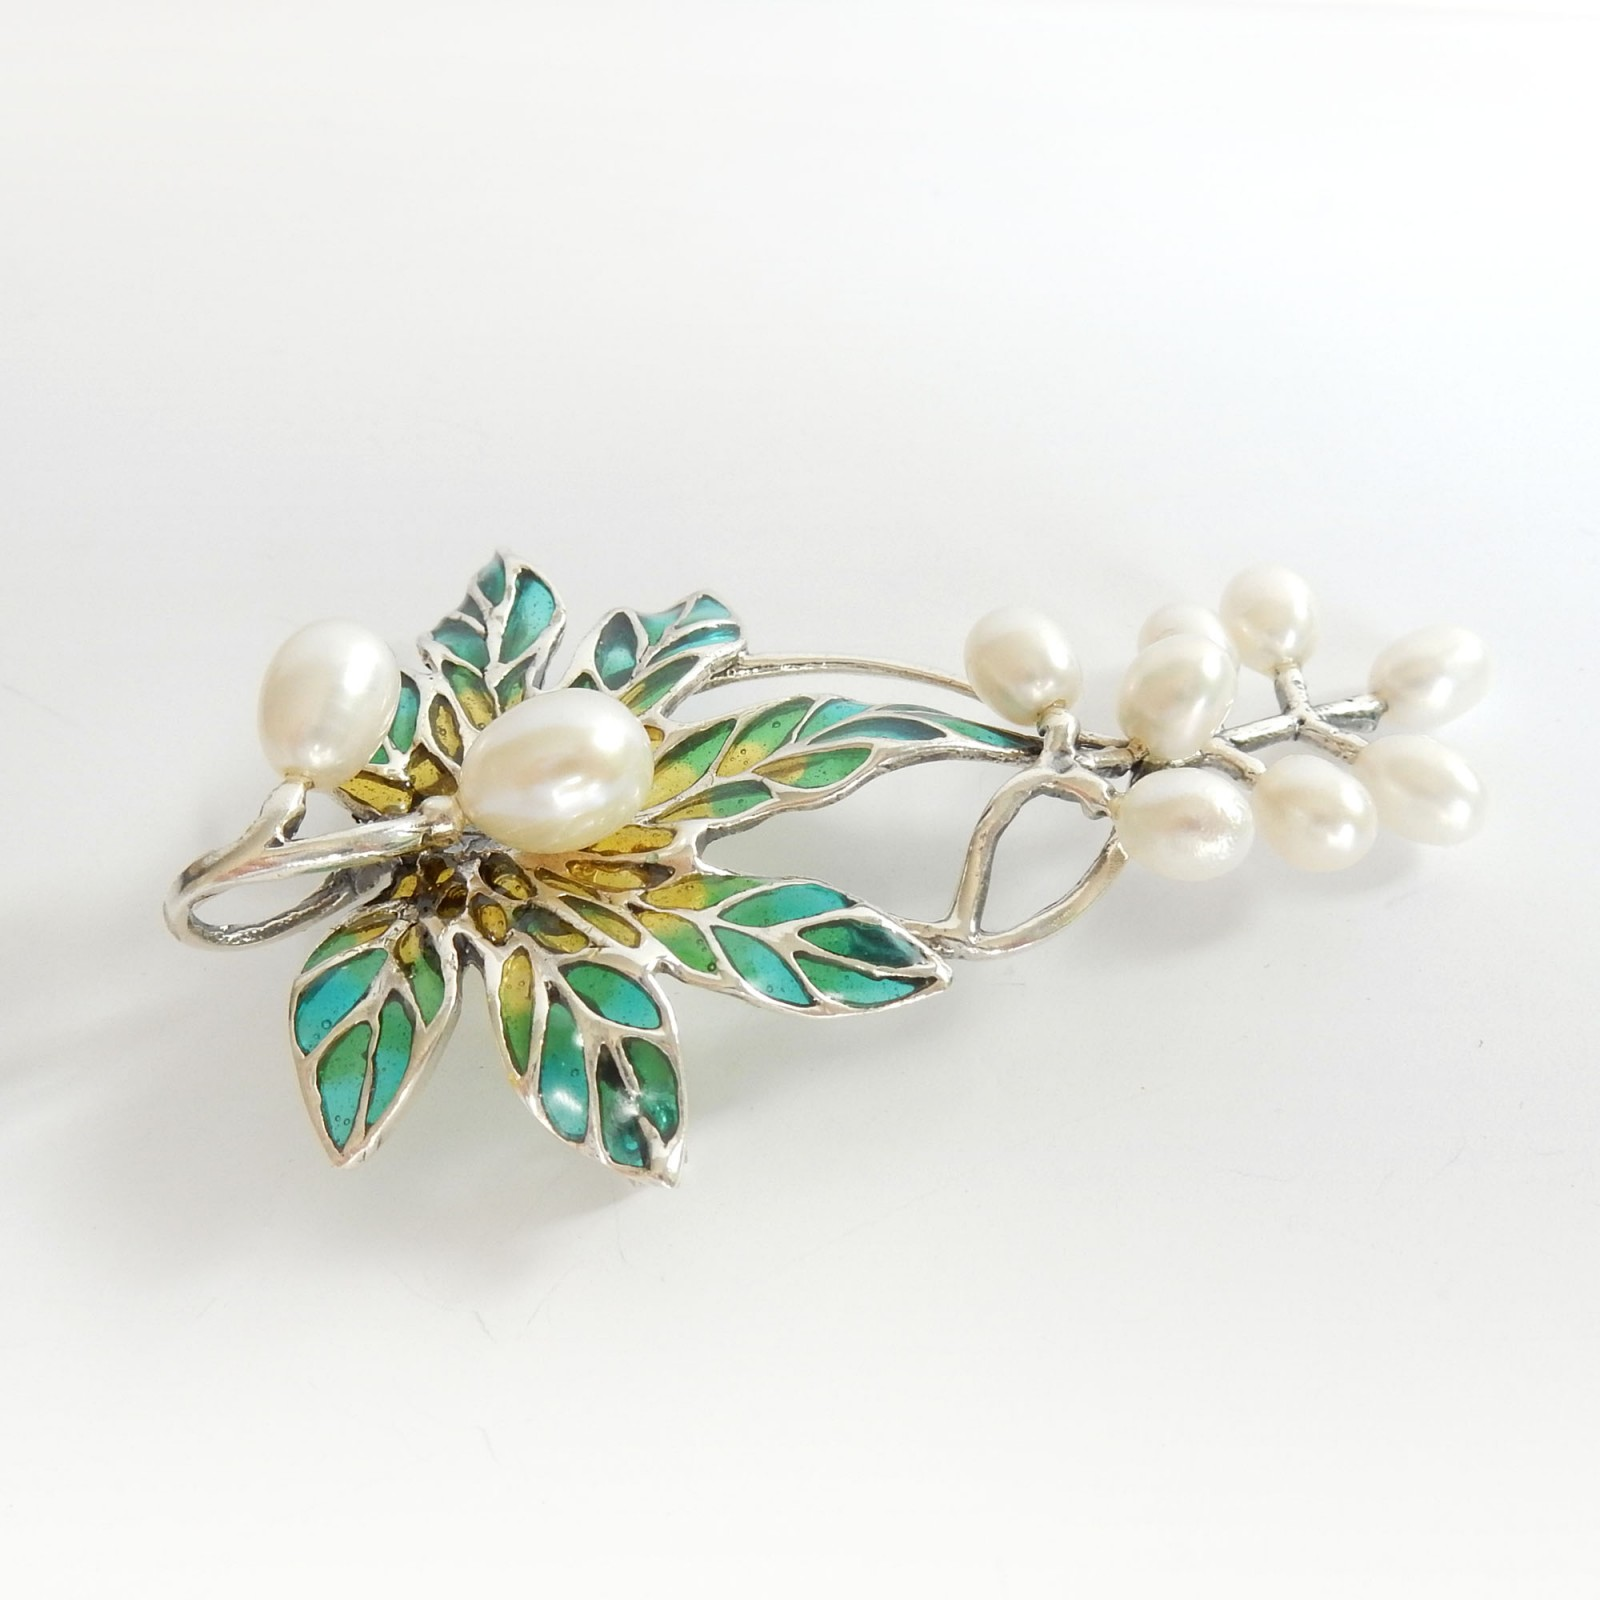 Photo of Plique a Jour Enamel Freshwater Pearl Leaf & Berry Pendant Brooch